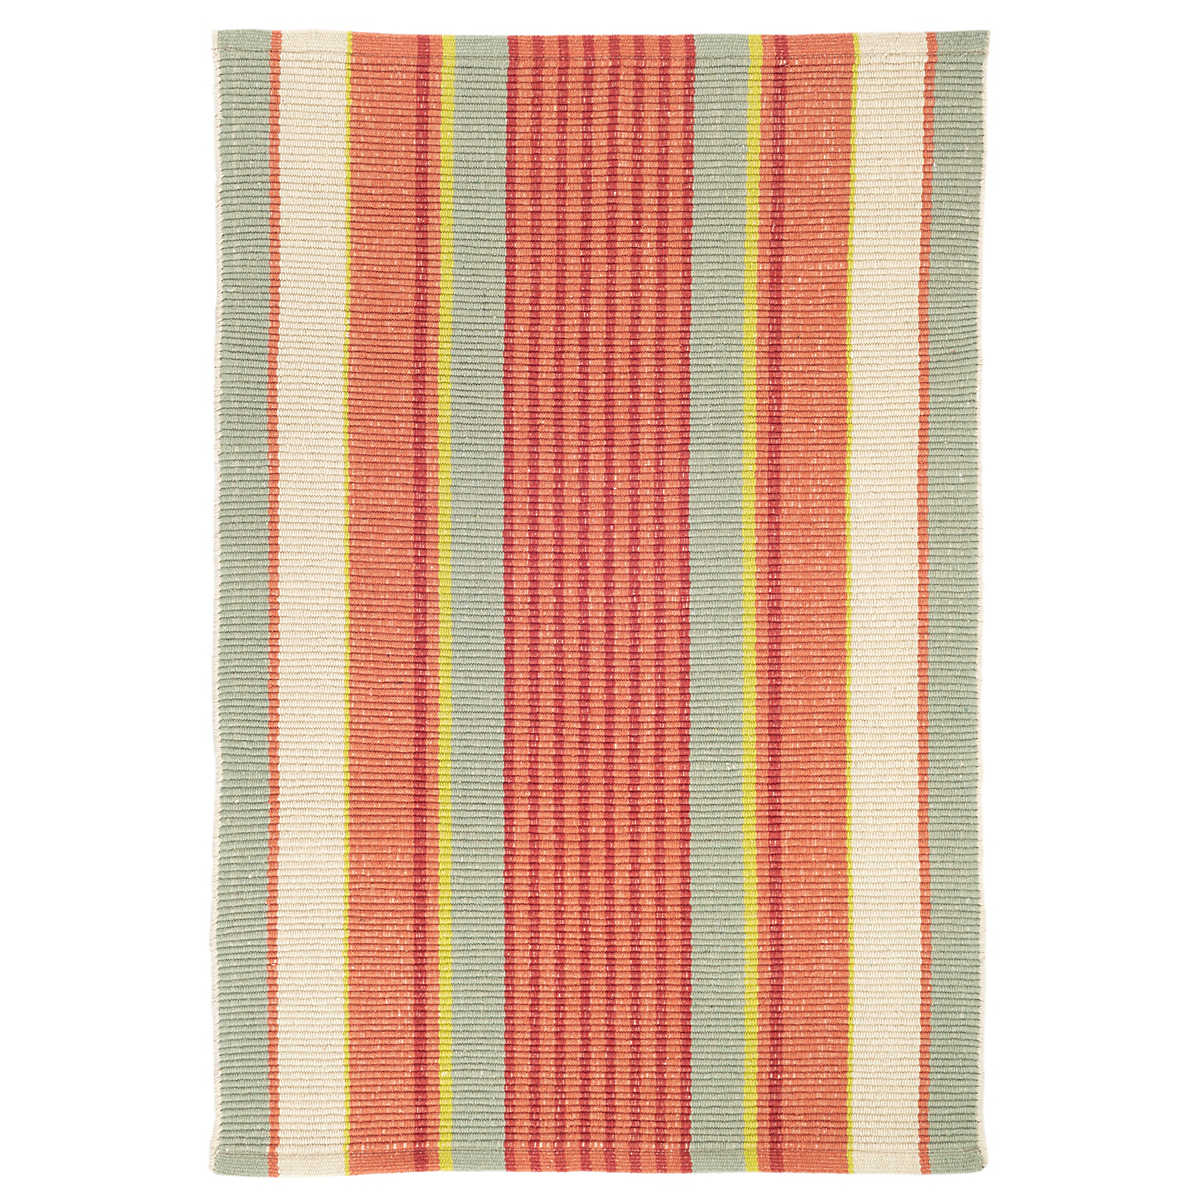 Shop our large collection of color-popping patterned and striped cotton woven rugs from Dash and Albert for your home. Our entire rug collection embraces the earthly feel. There is something so natural about going barefoot on a cotton rug.